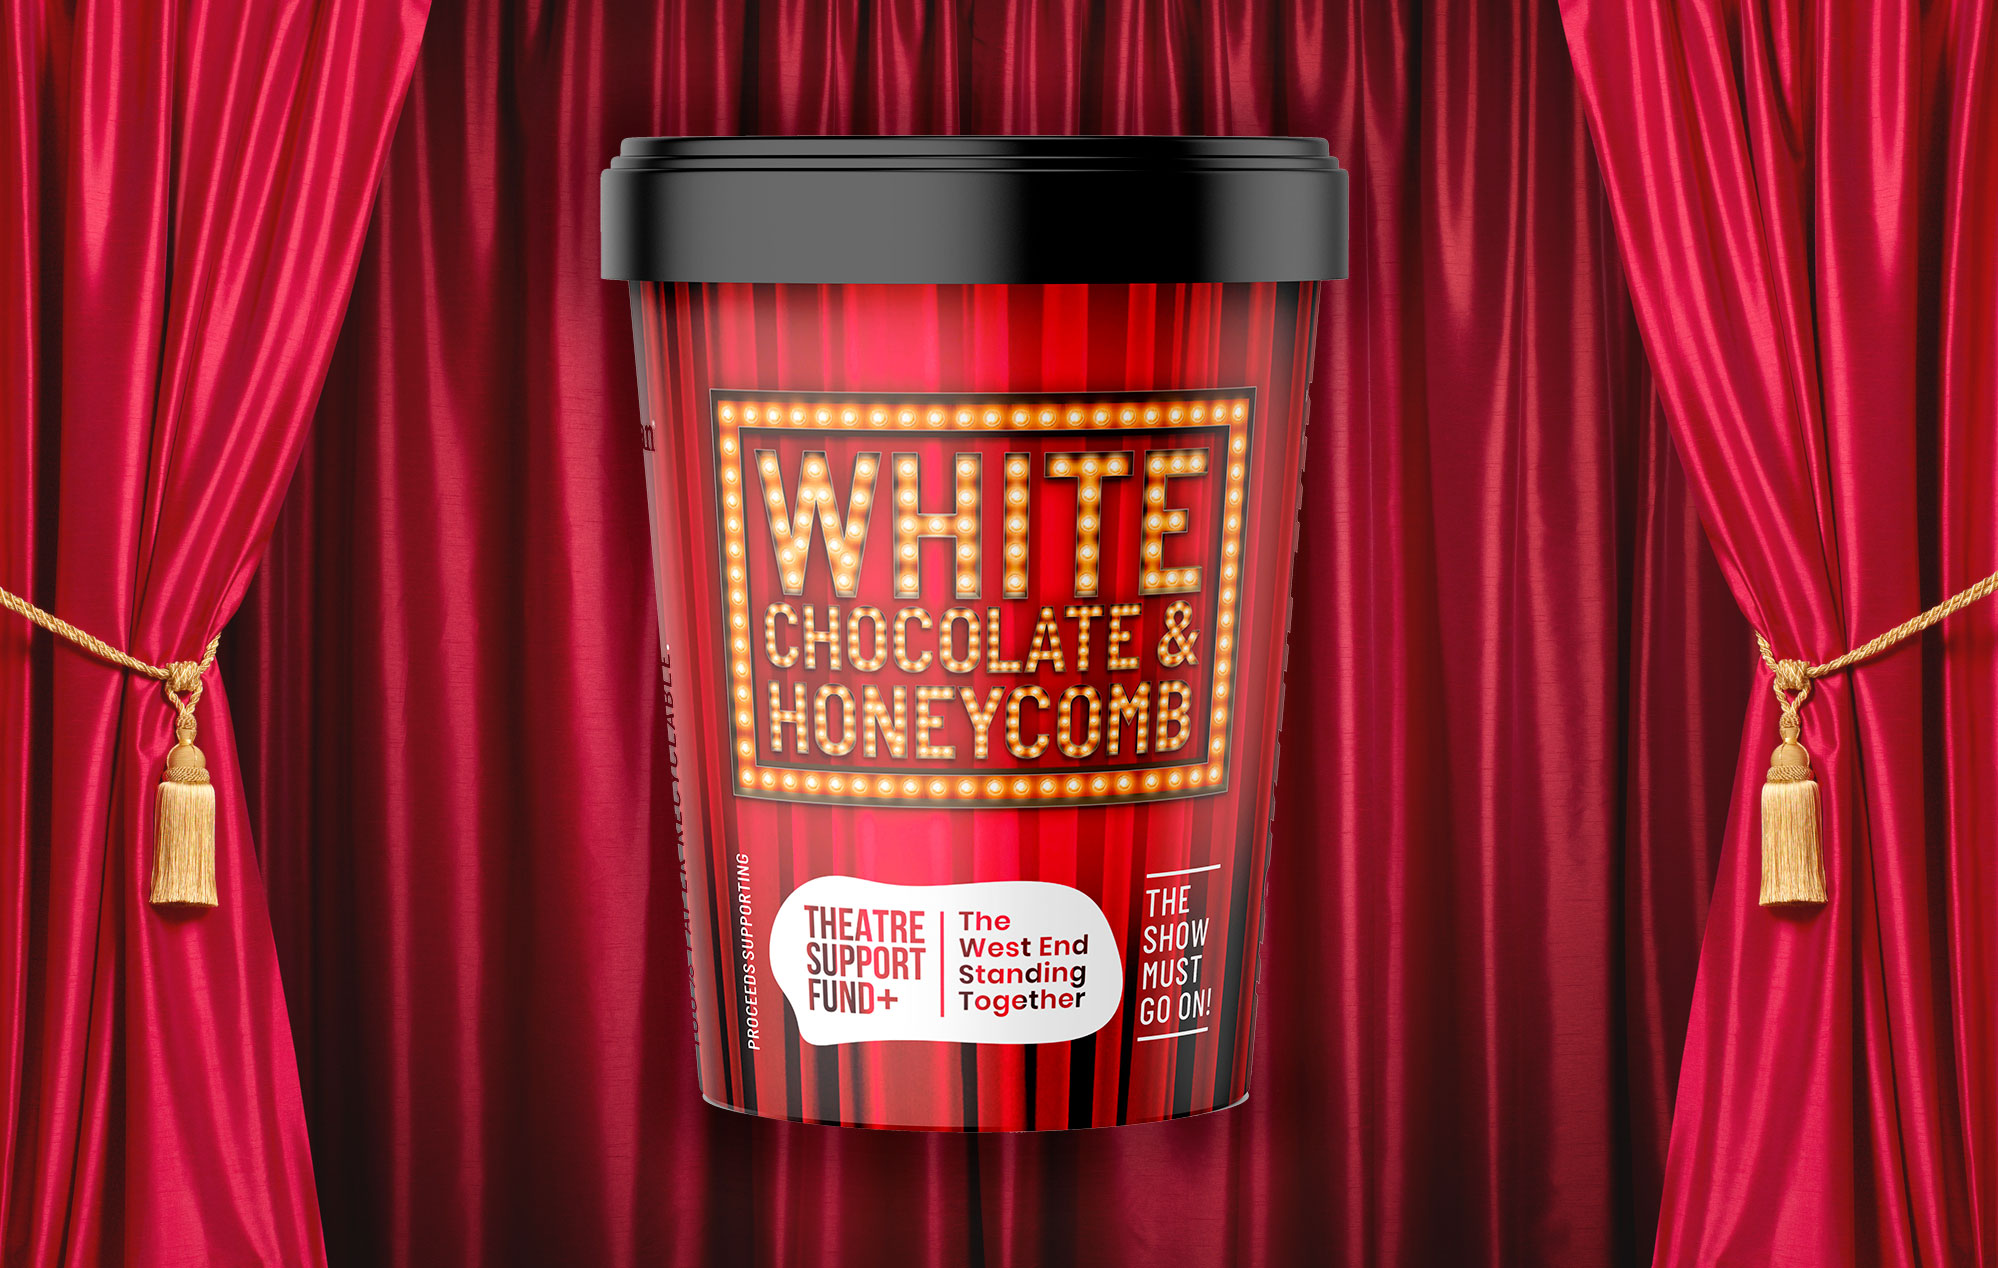 Northern Bloc to launch vegan white chocolate and honeycomb ice cream